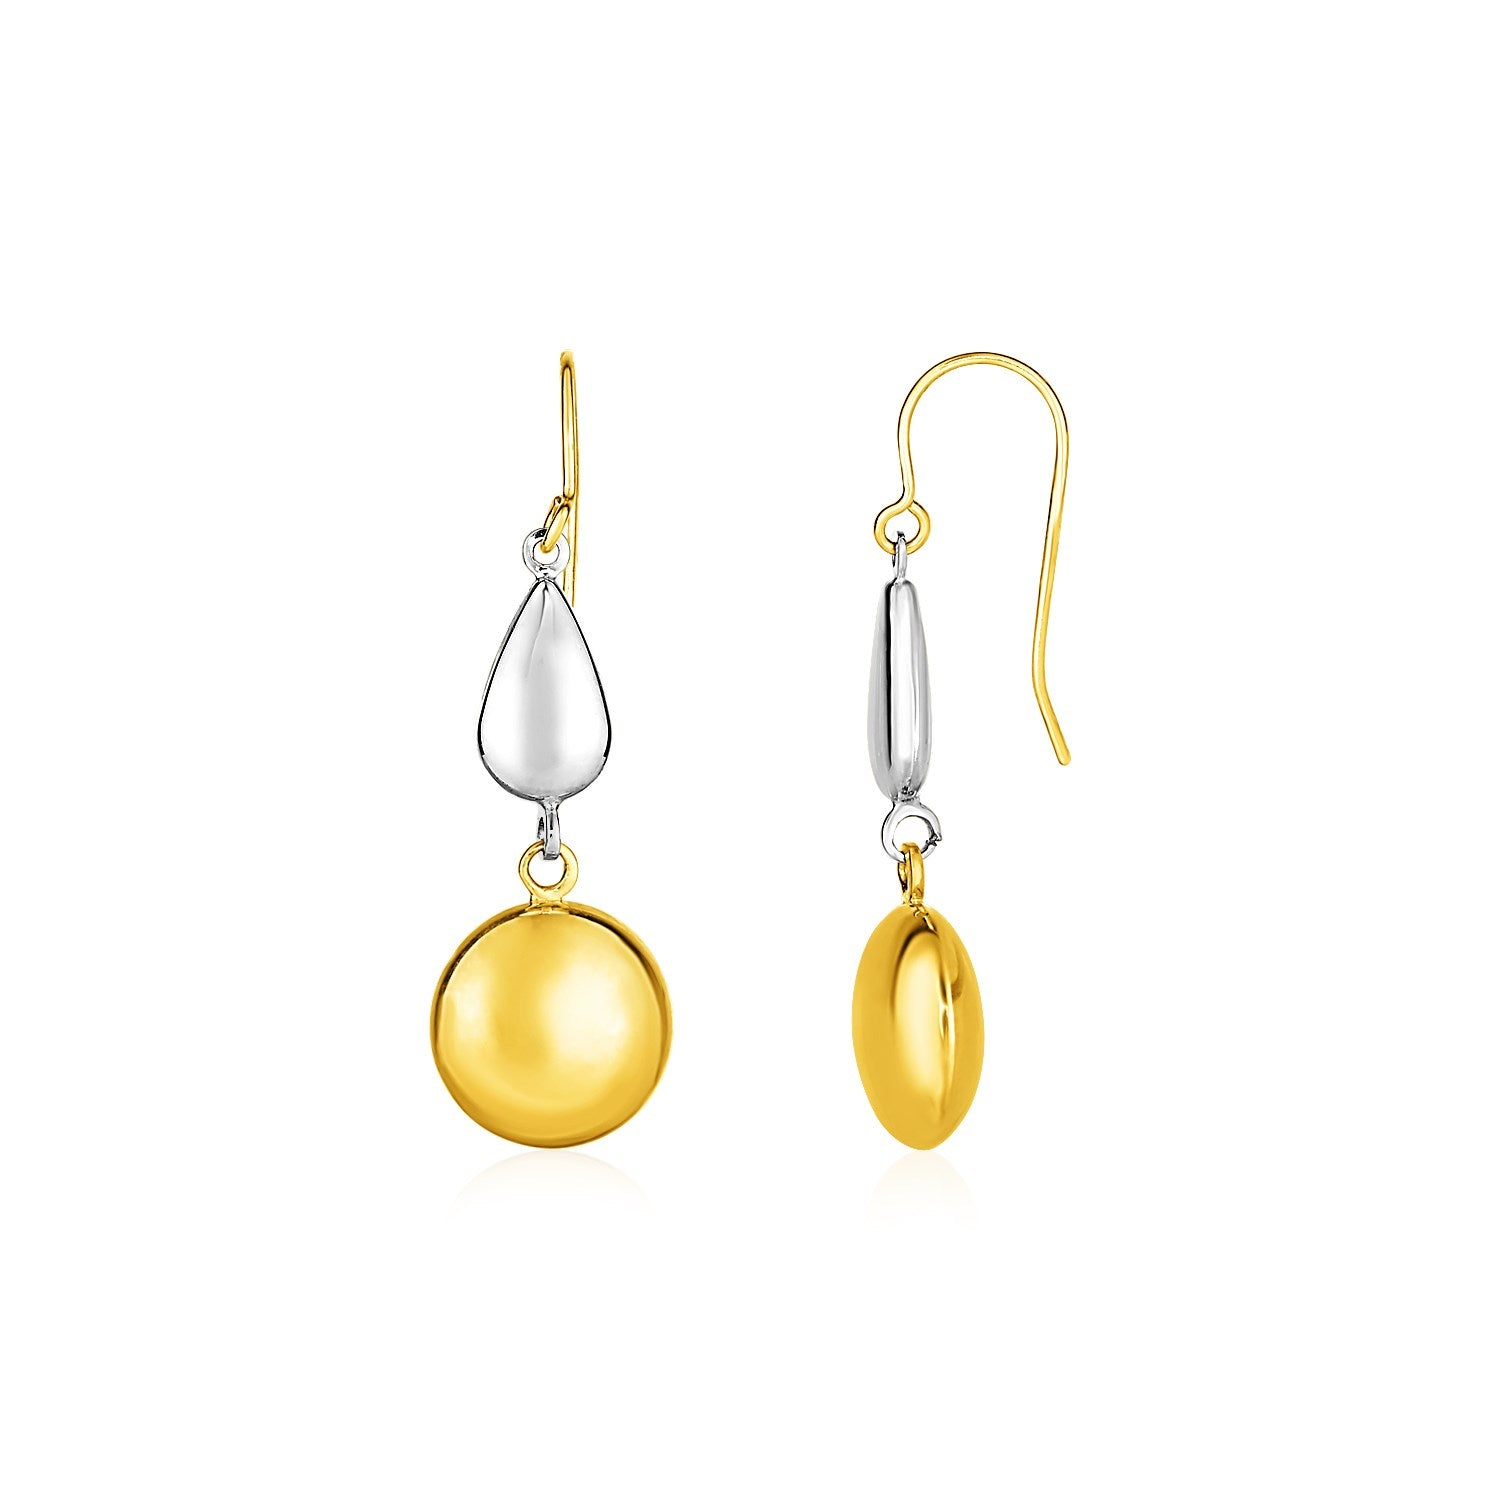 Two-Tone Puffed Teardrop and Round Drop Earrings in 10K Yellow and White Gold